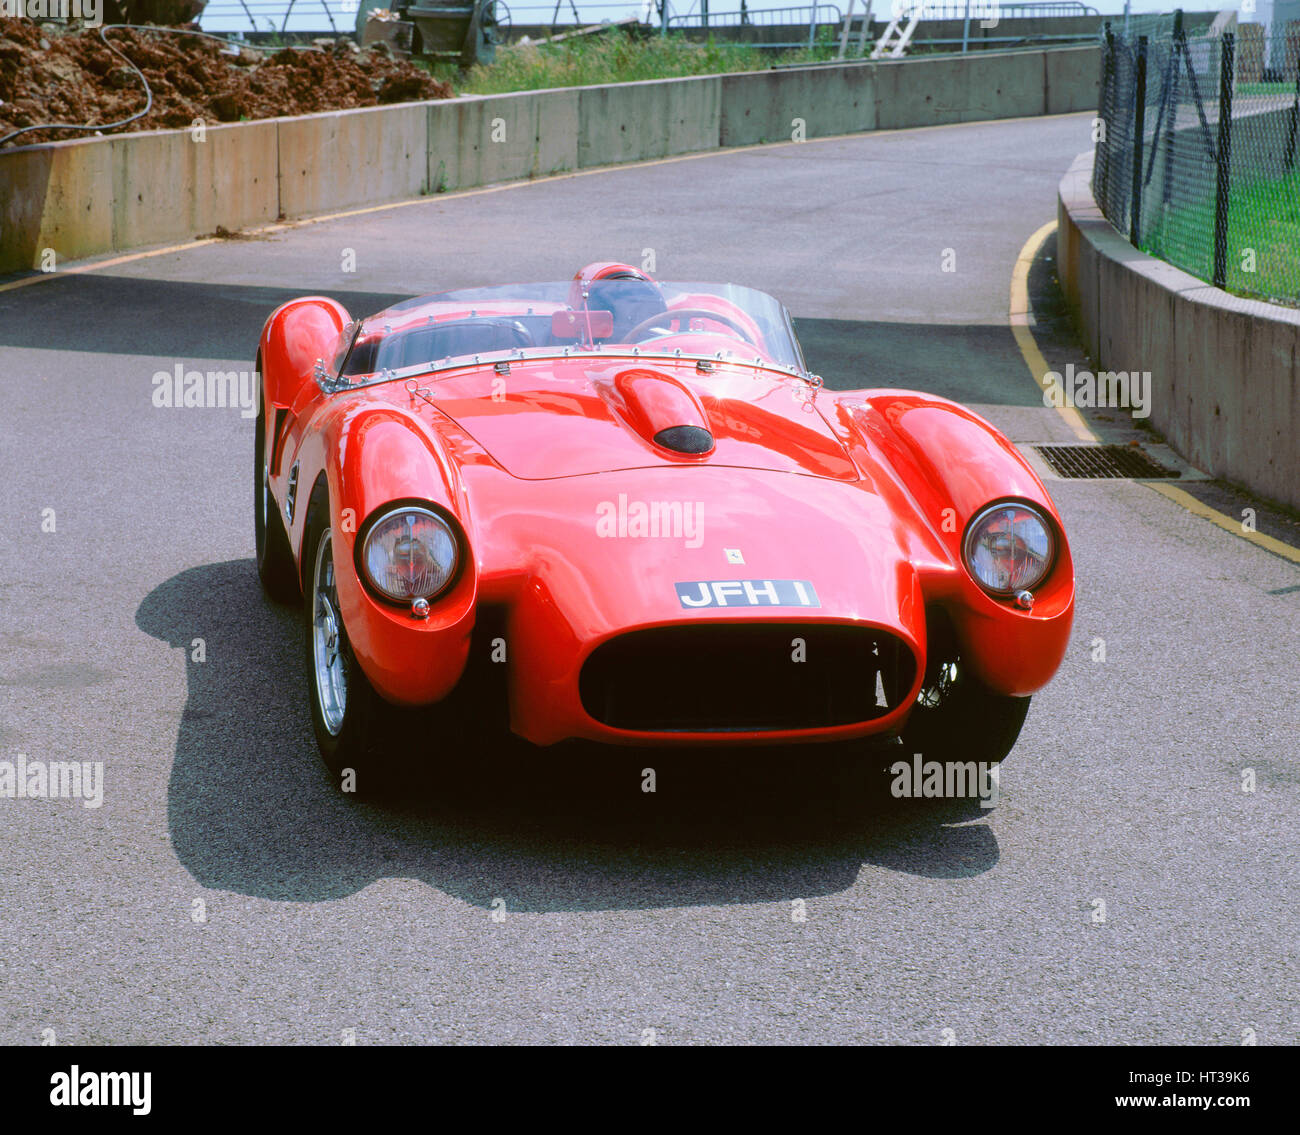 1958 Ferrari 250 Testarossa. Artist: Unknown. - Stock Image